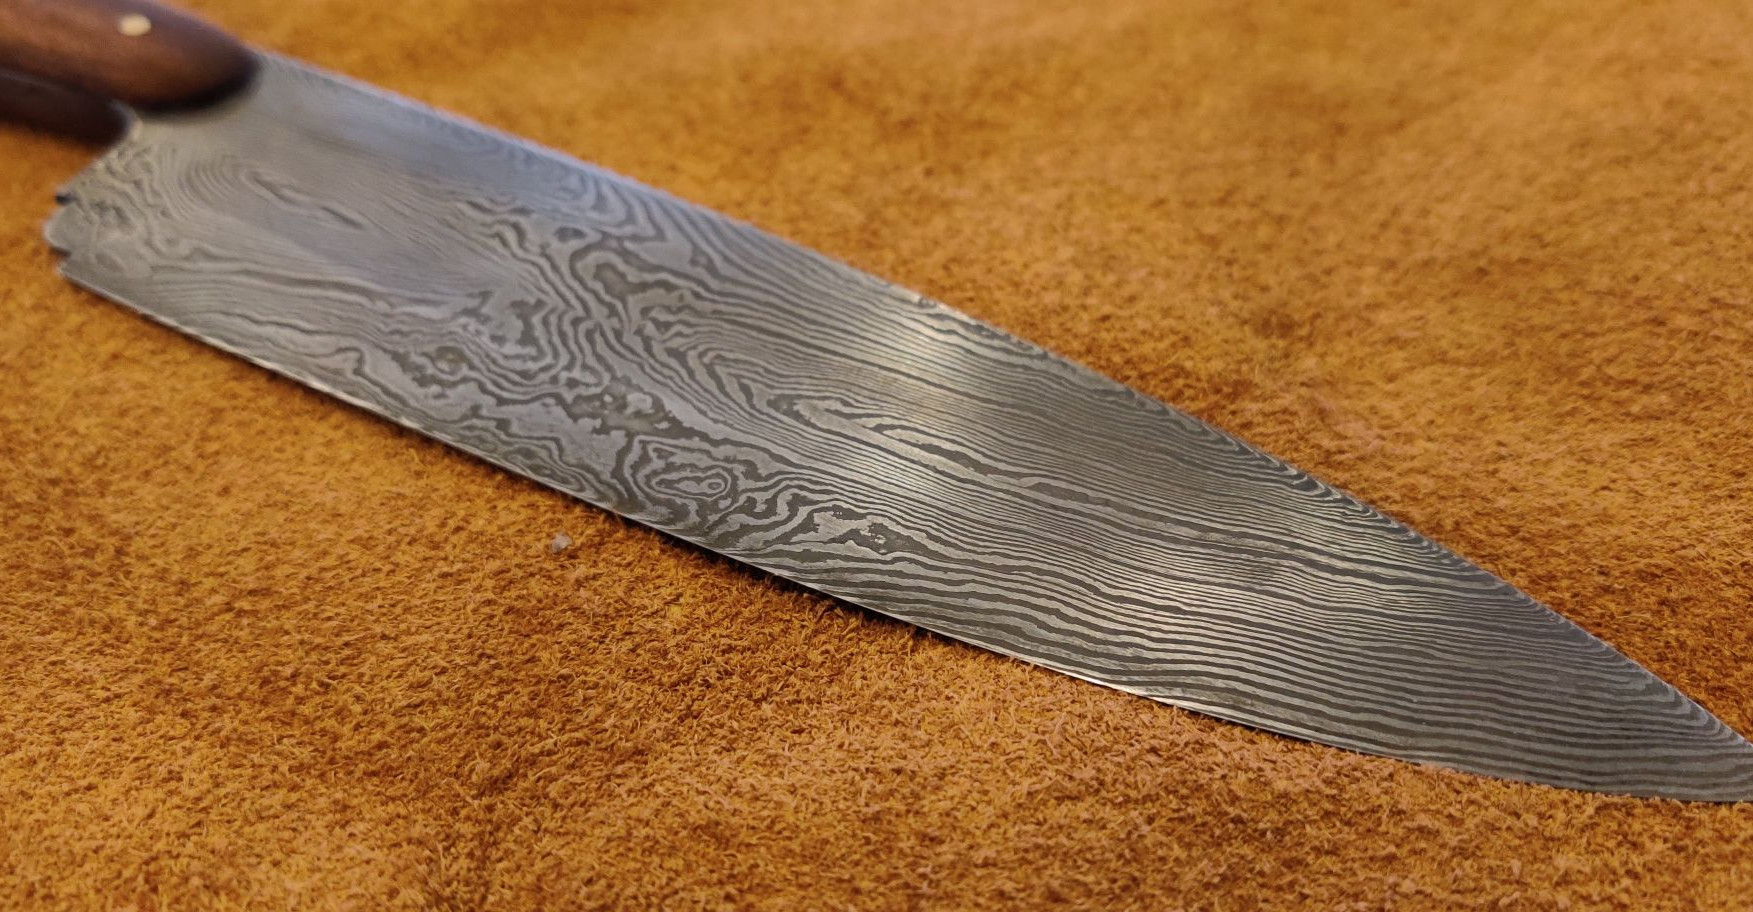 Damascus Chef's Knife